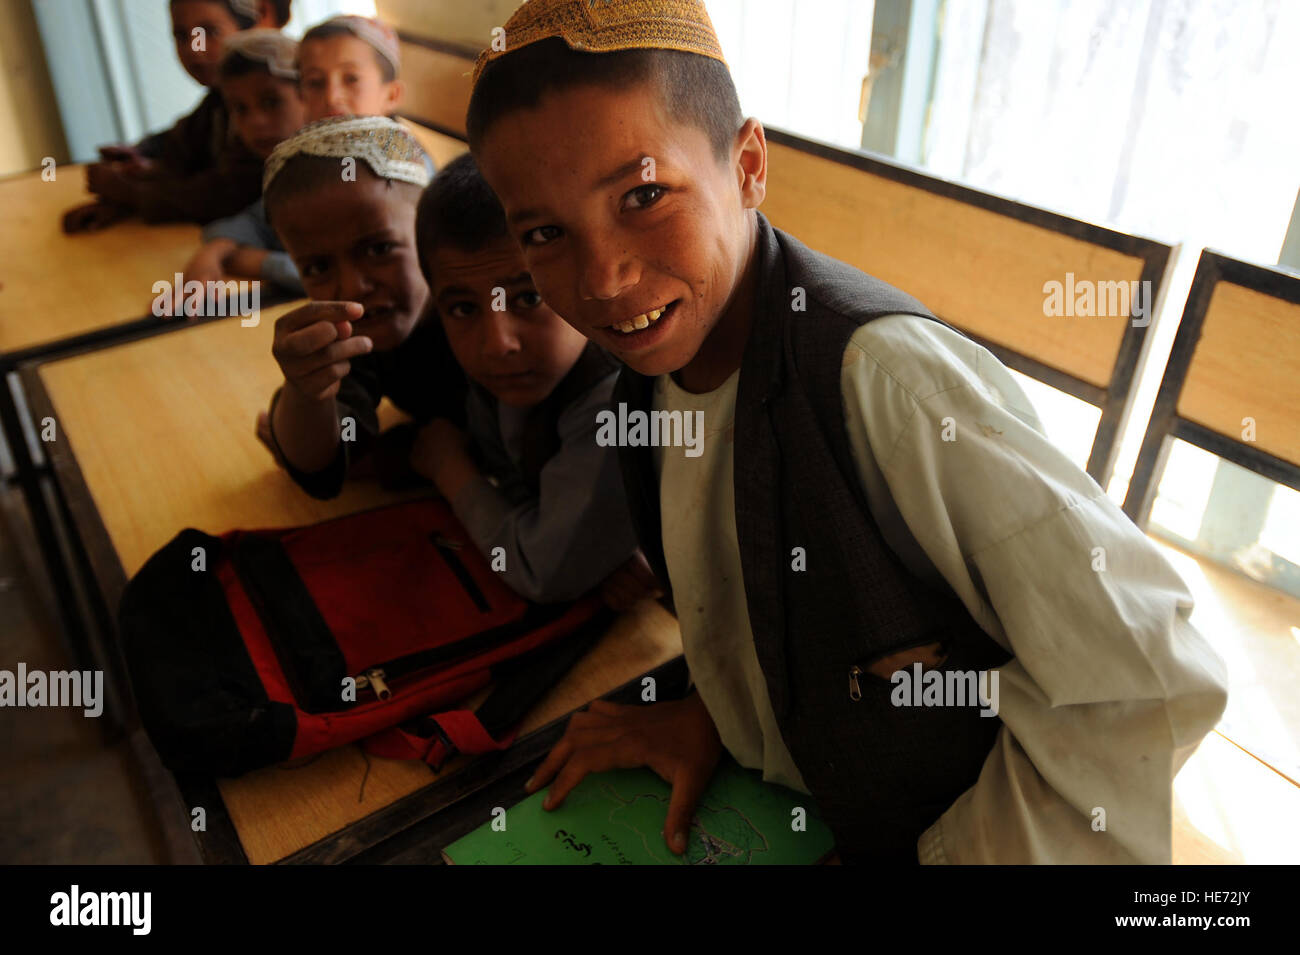 Young Afghan children lean over their desks at school to smile for the camera, March 31, Morgan Kacha village, Southern - Stock Image